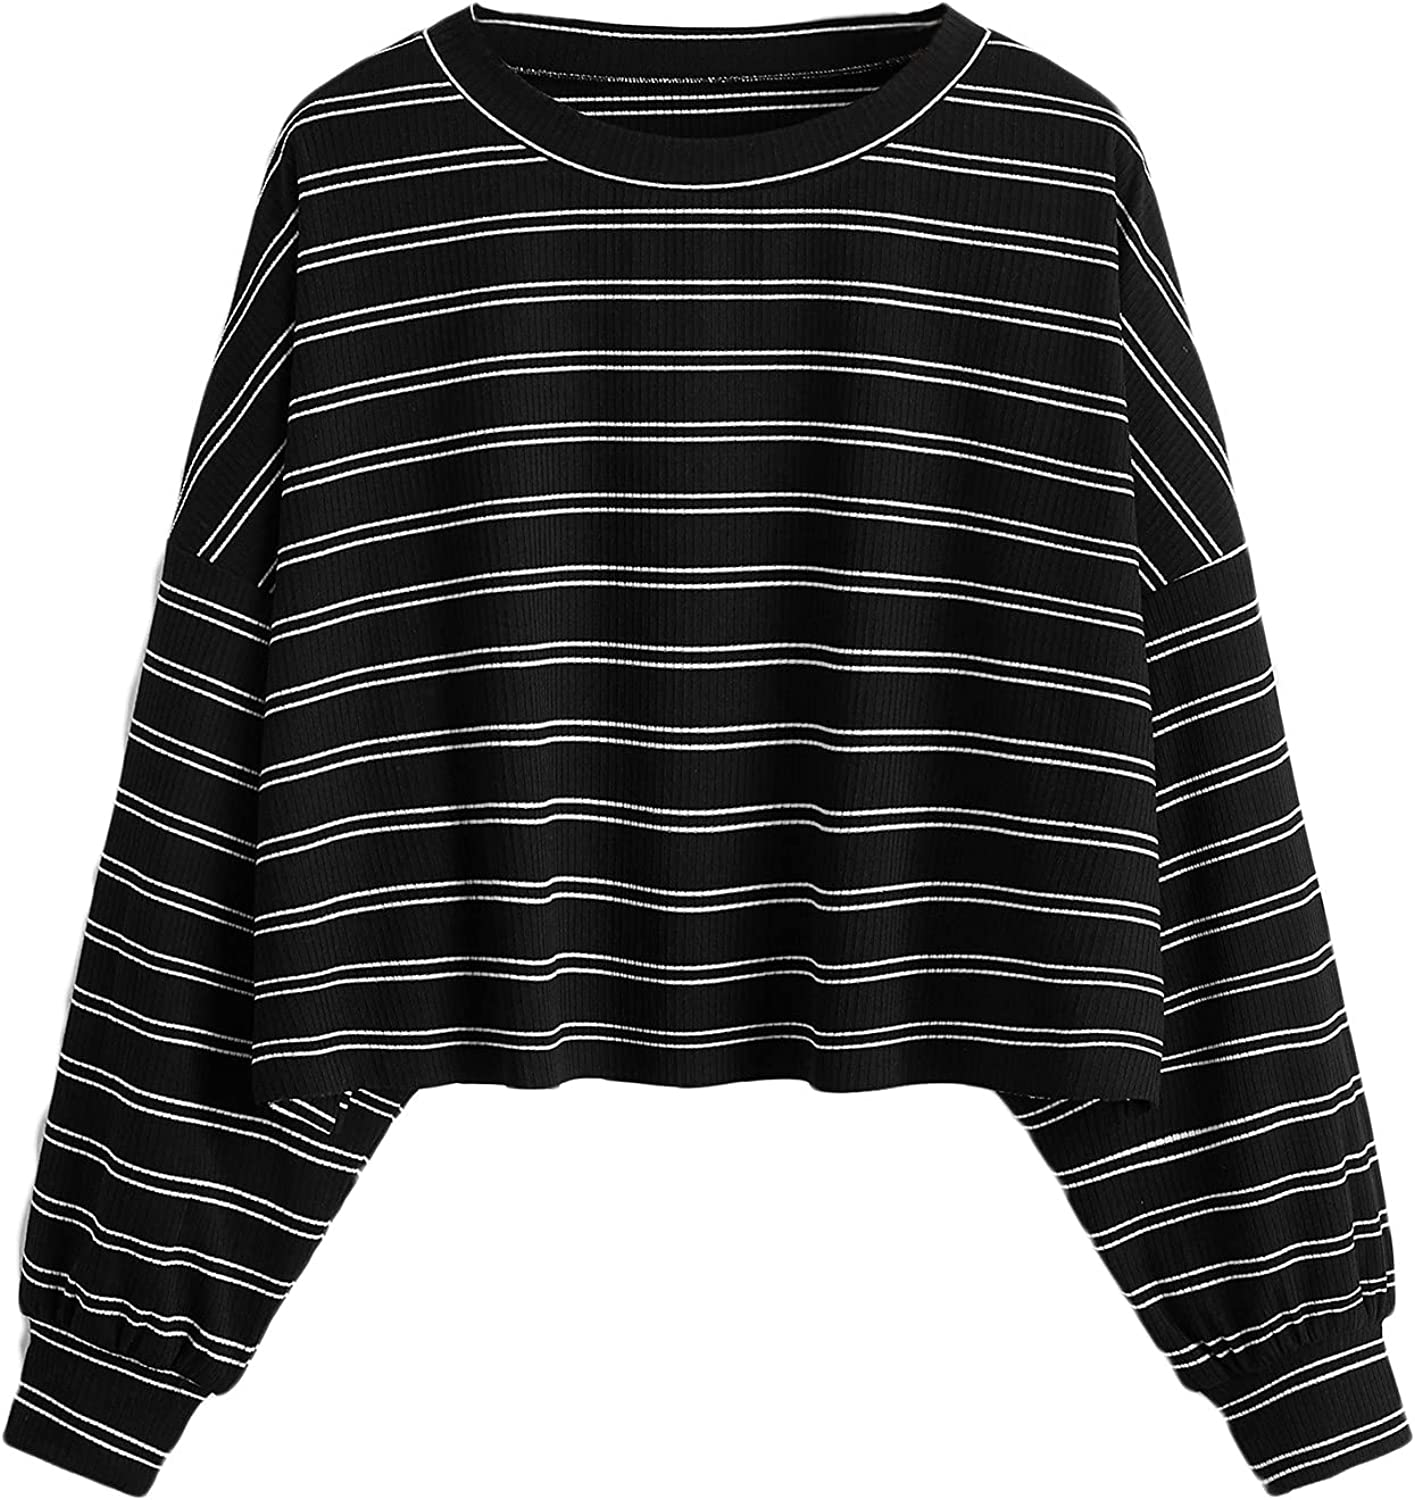 Romwe Women's Plus Size Striped Shirts Long Sleeve Drop Shoulder Ribbed Tee Tops